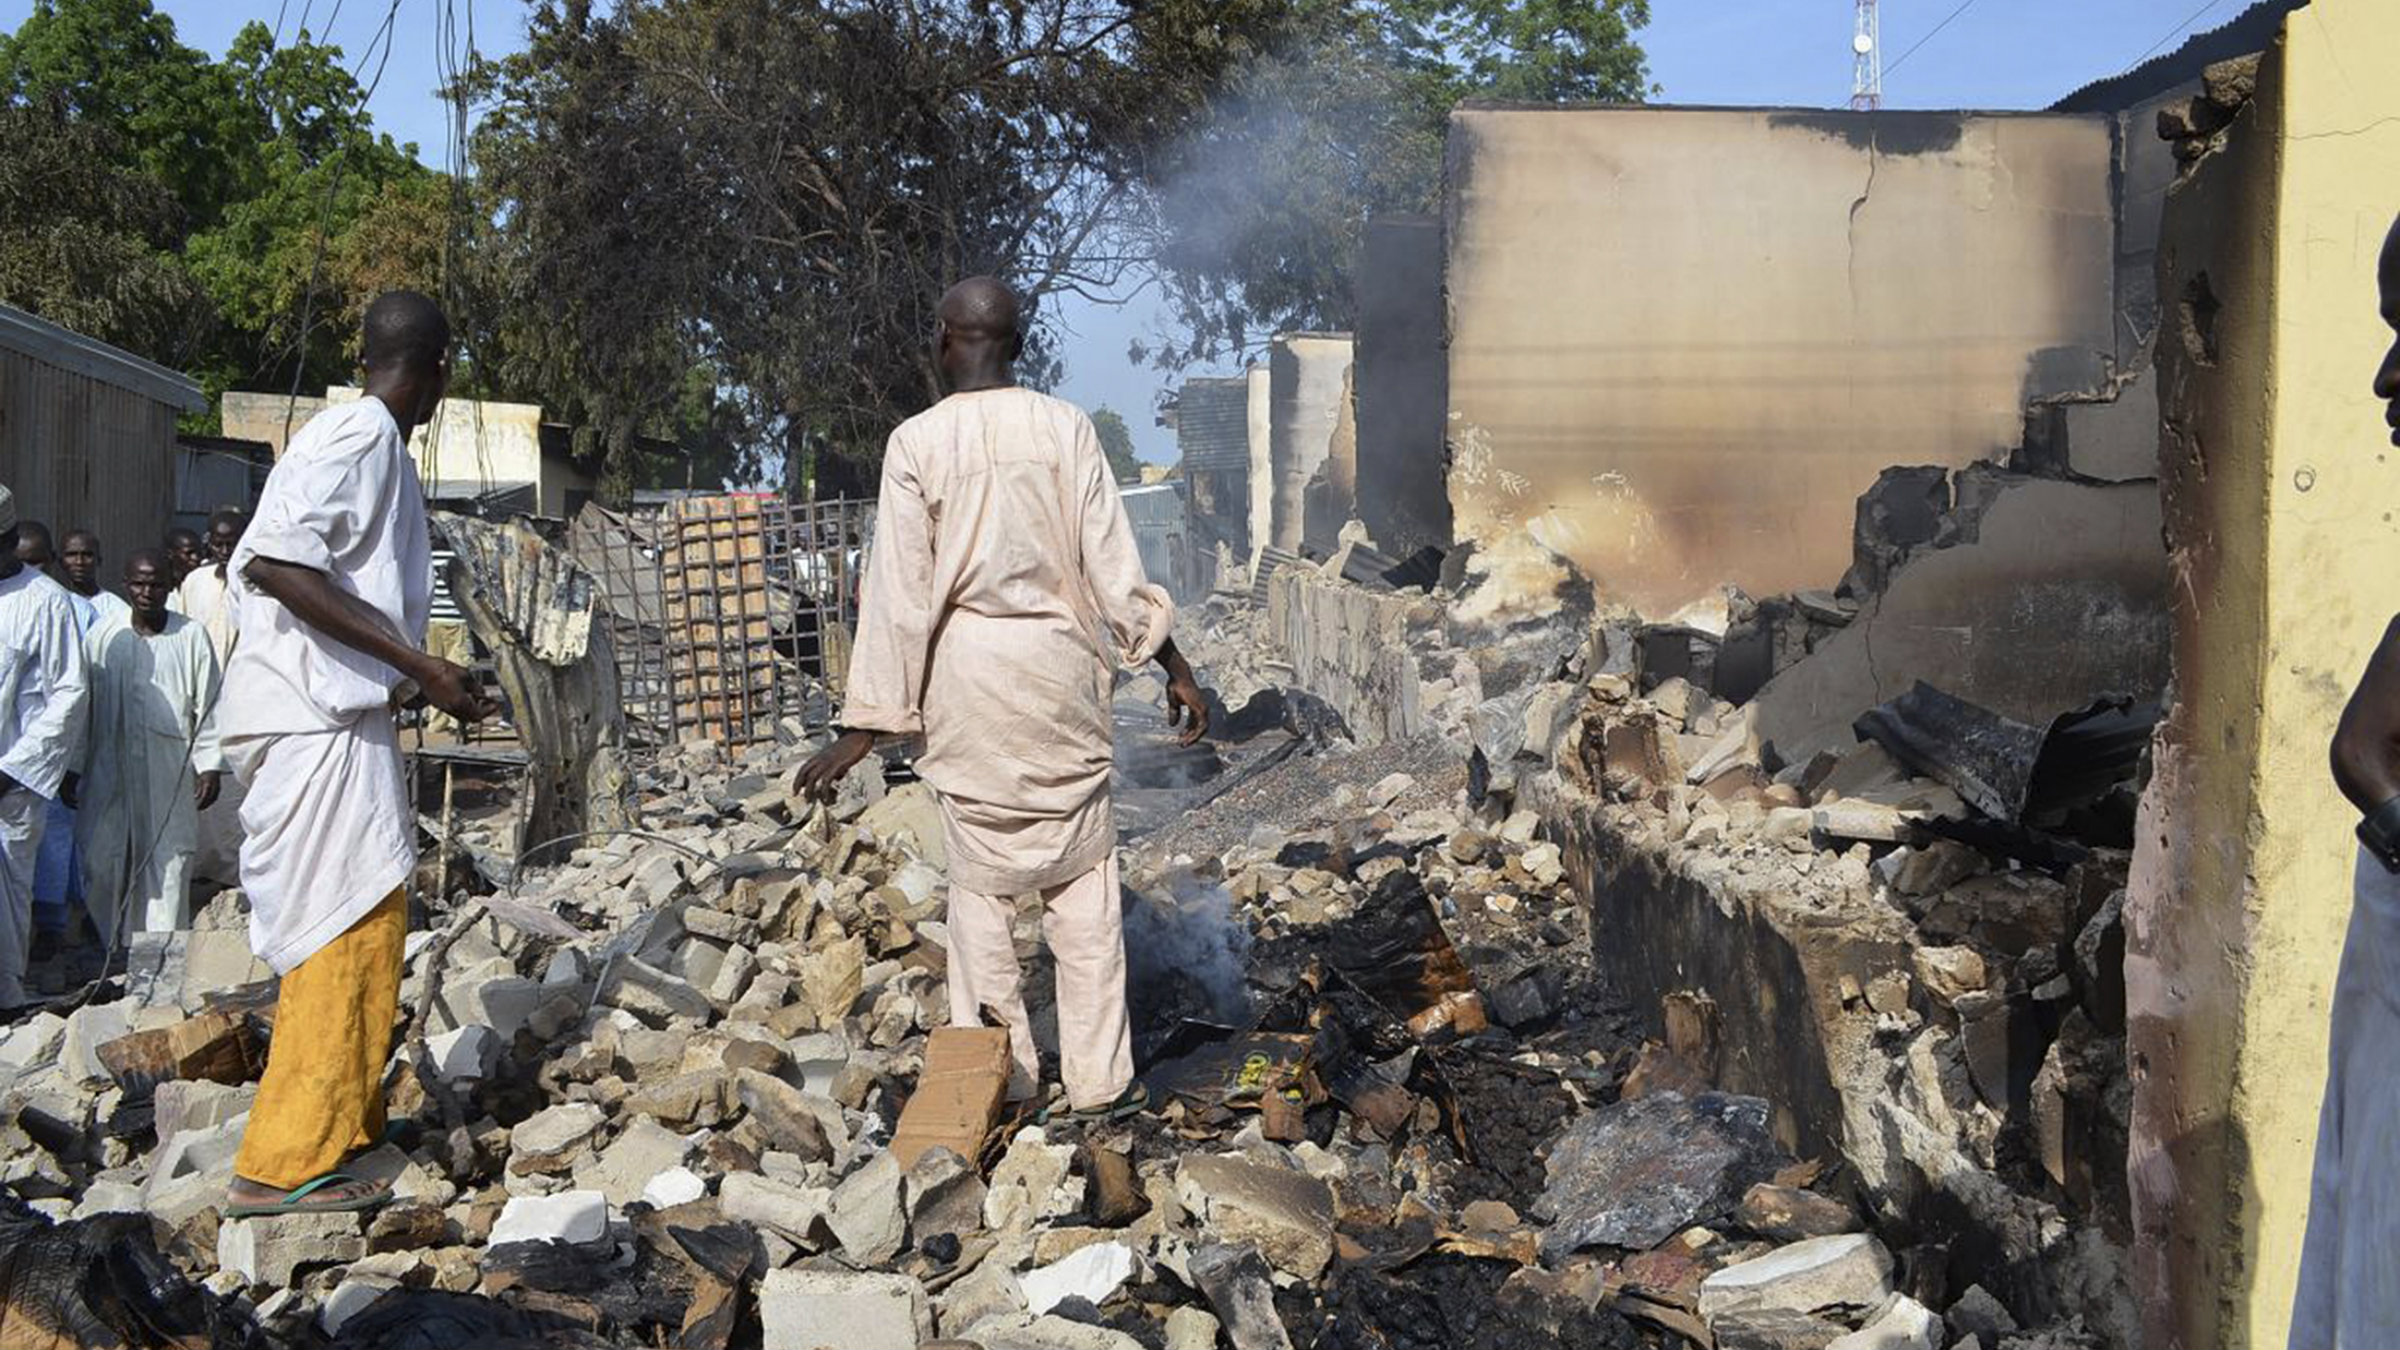 Two men walk in the rubble after Boko Haram militants raided the town of Benisheik.